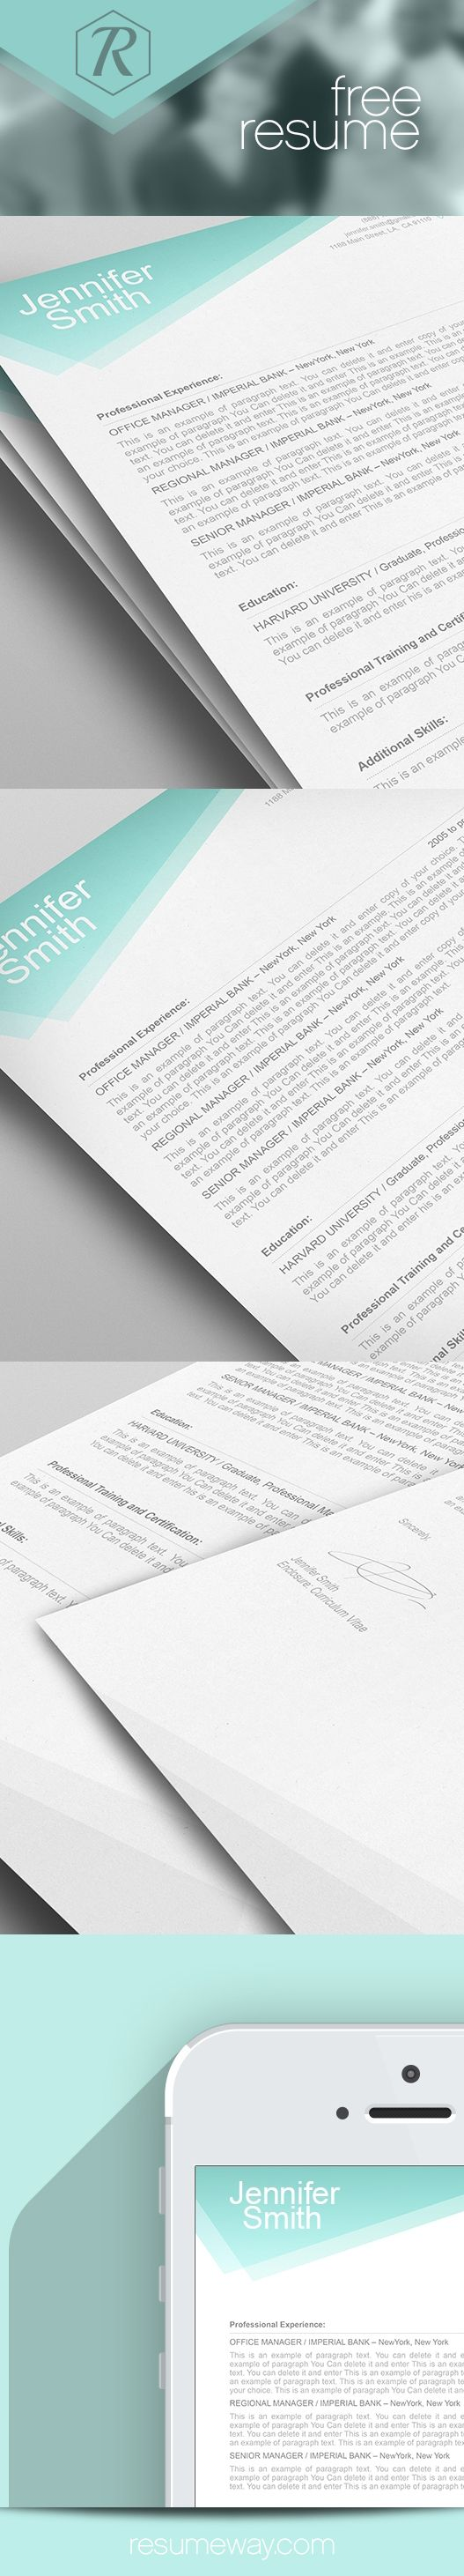 Free Resume Template Premium Line Of Resume